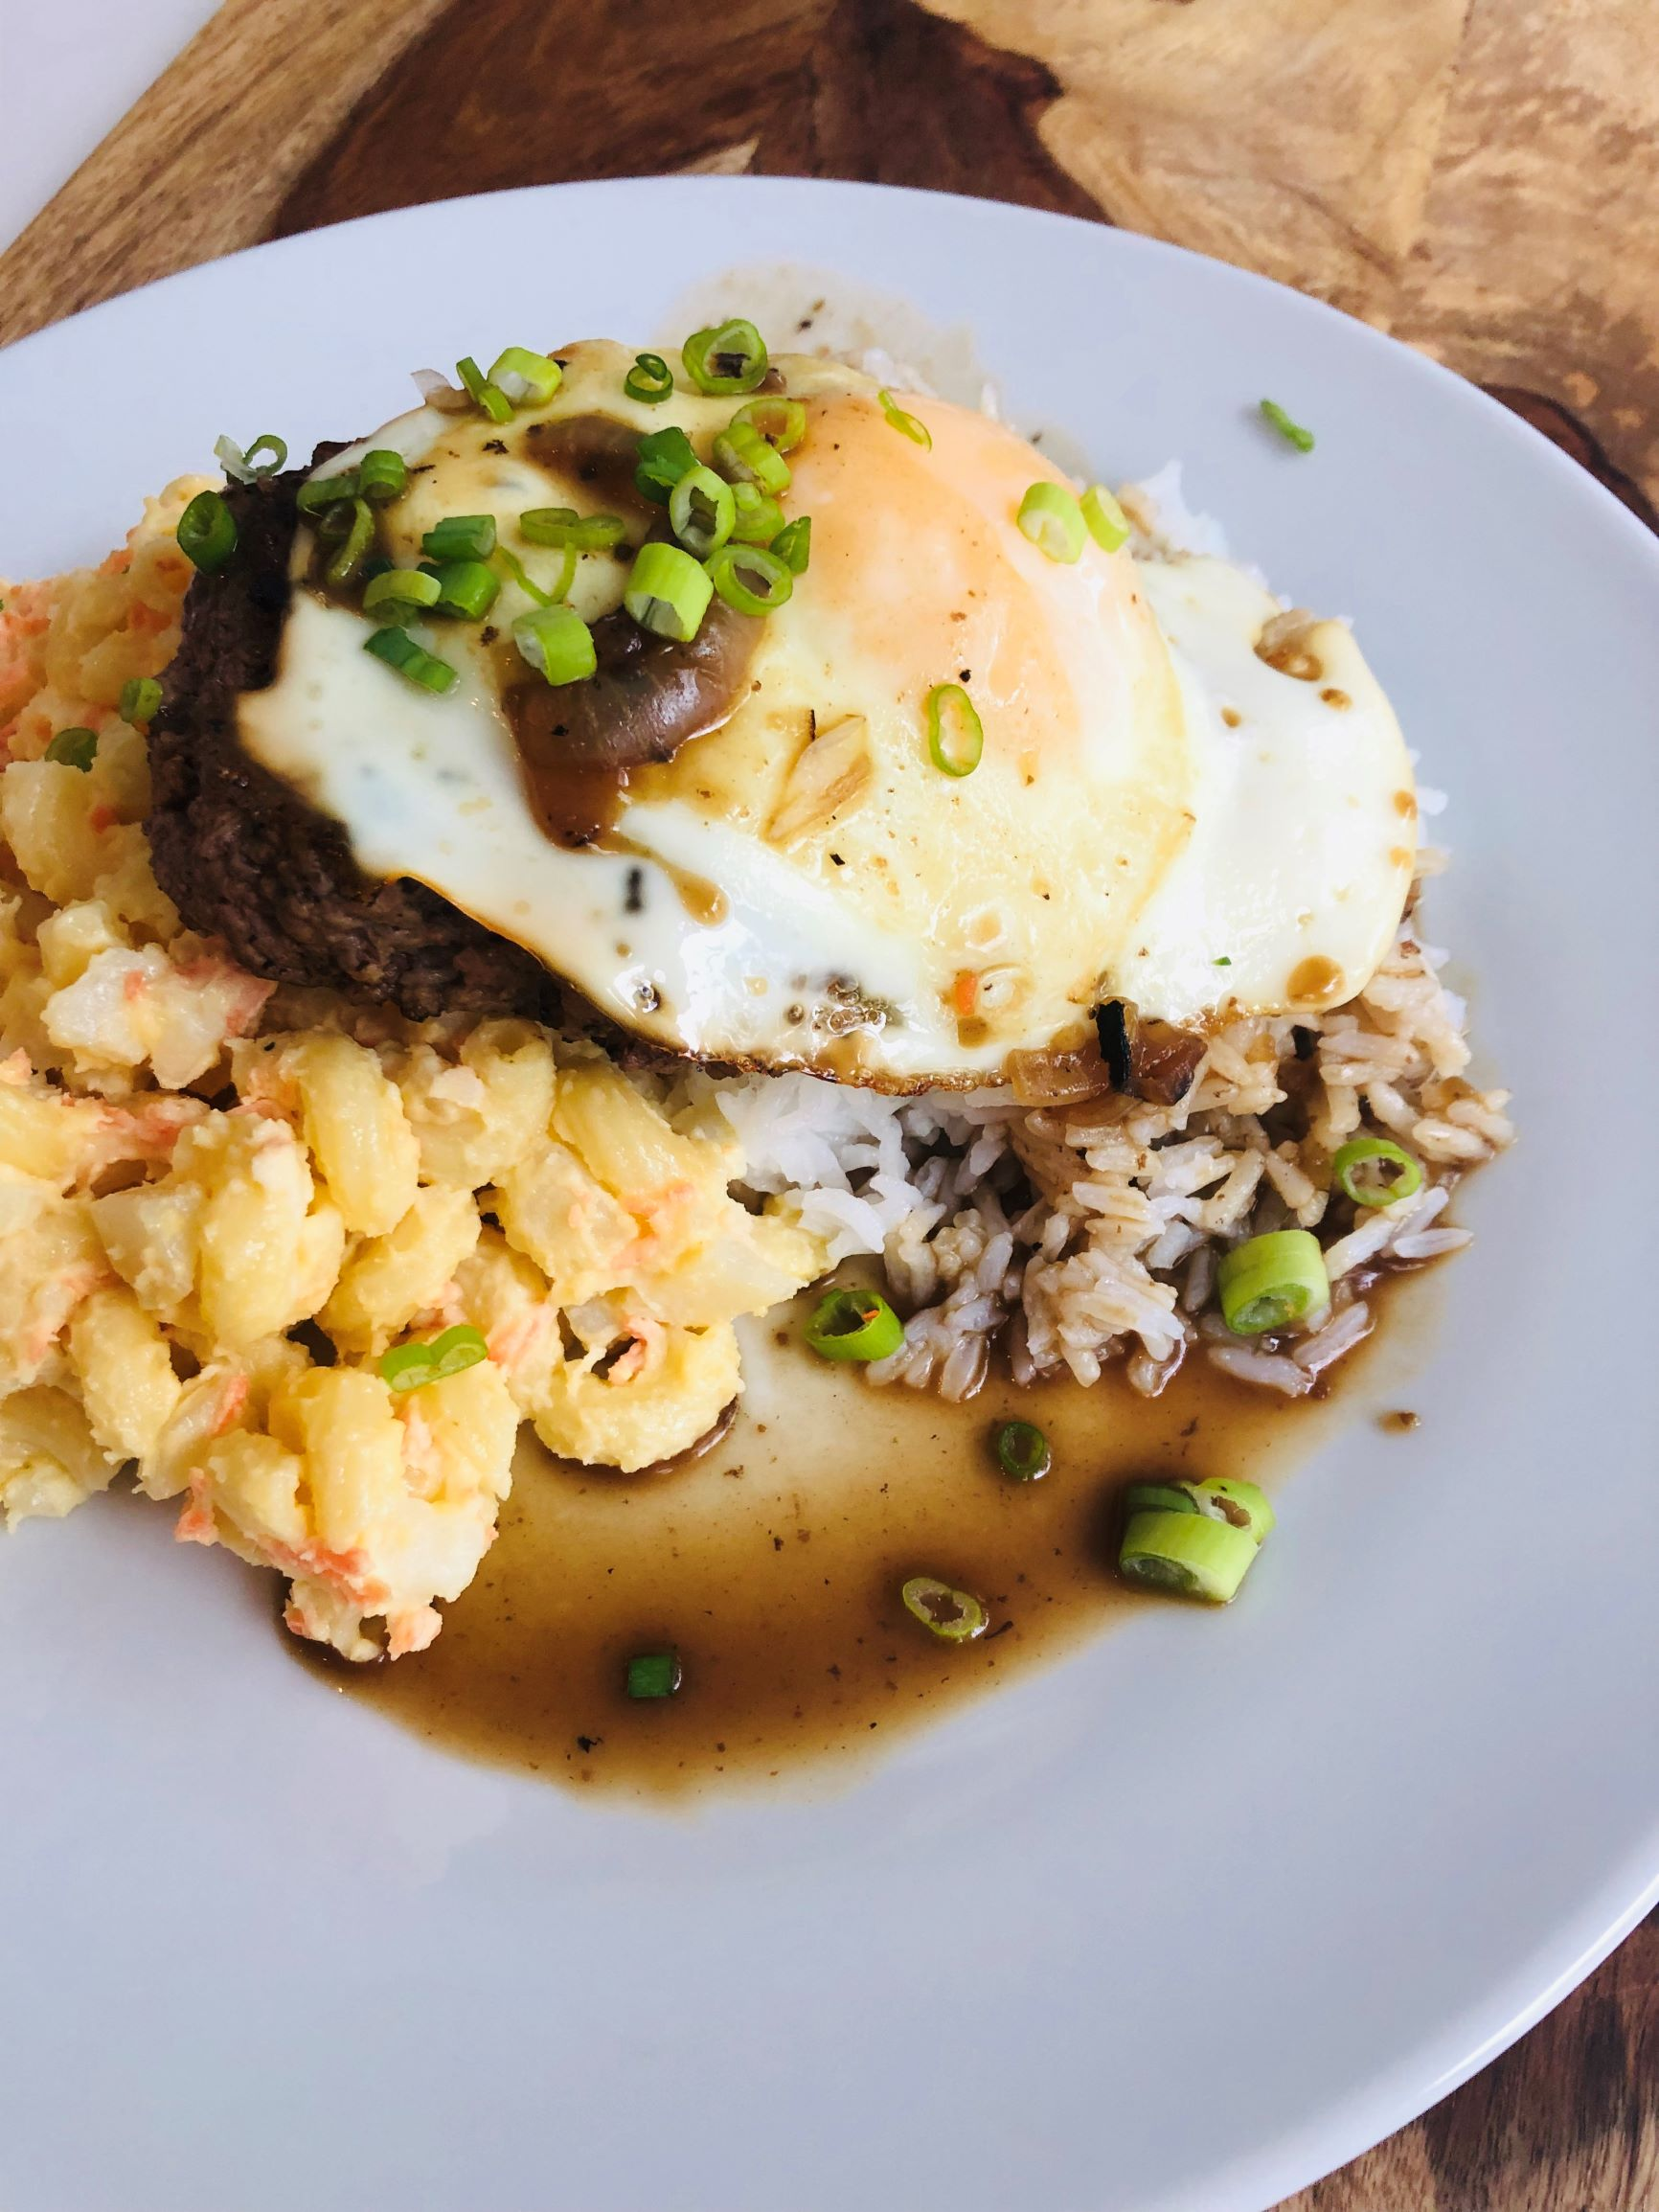 Hawaiian Loco Moco Garbage Plates Luria Co